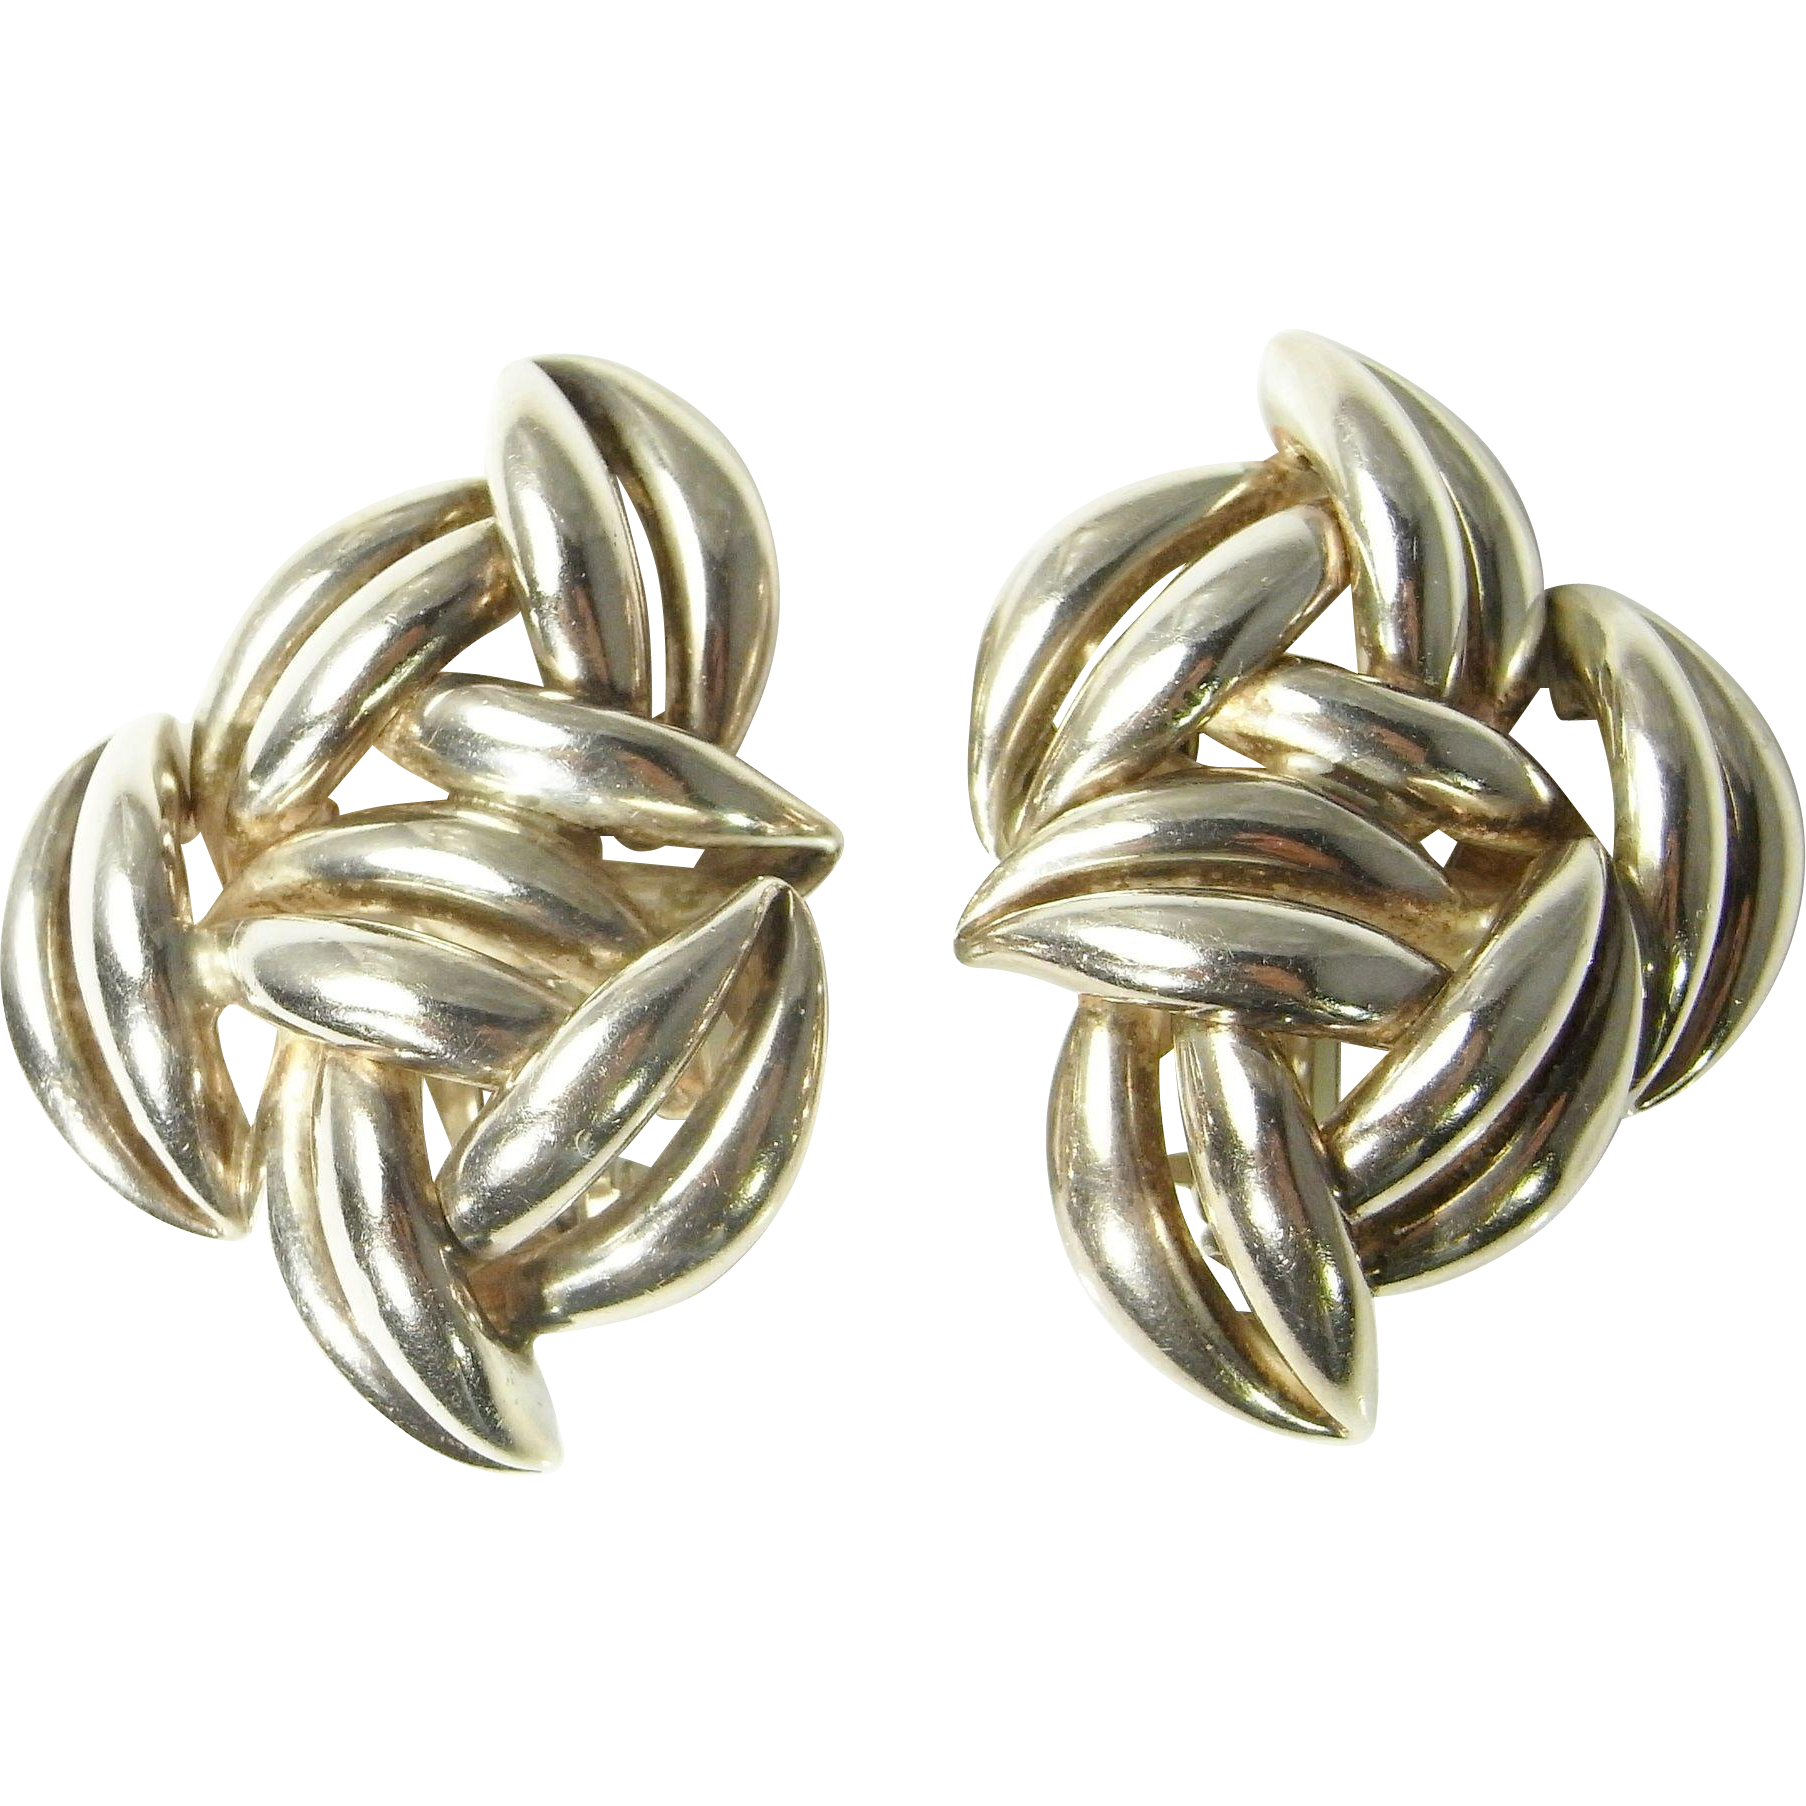 Silver clip sterling. Statement earrings on modernist